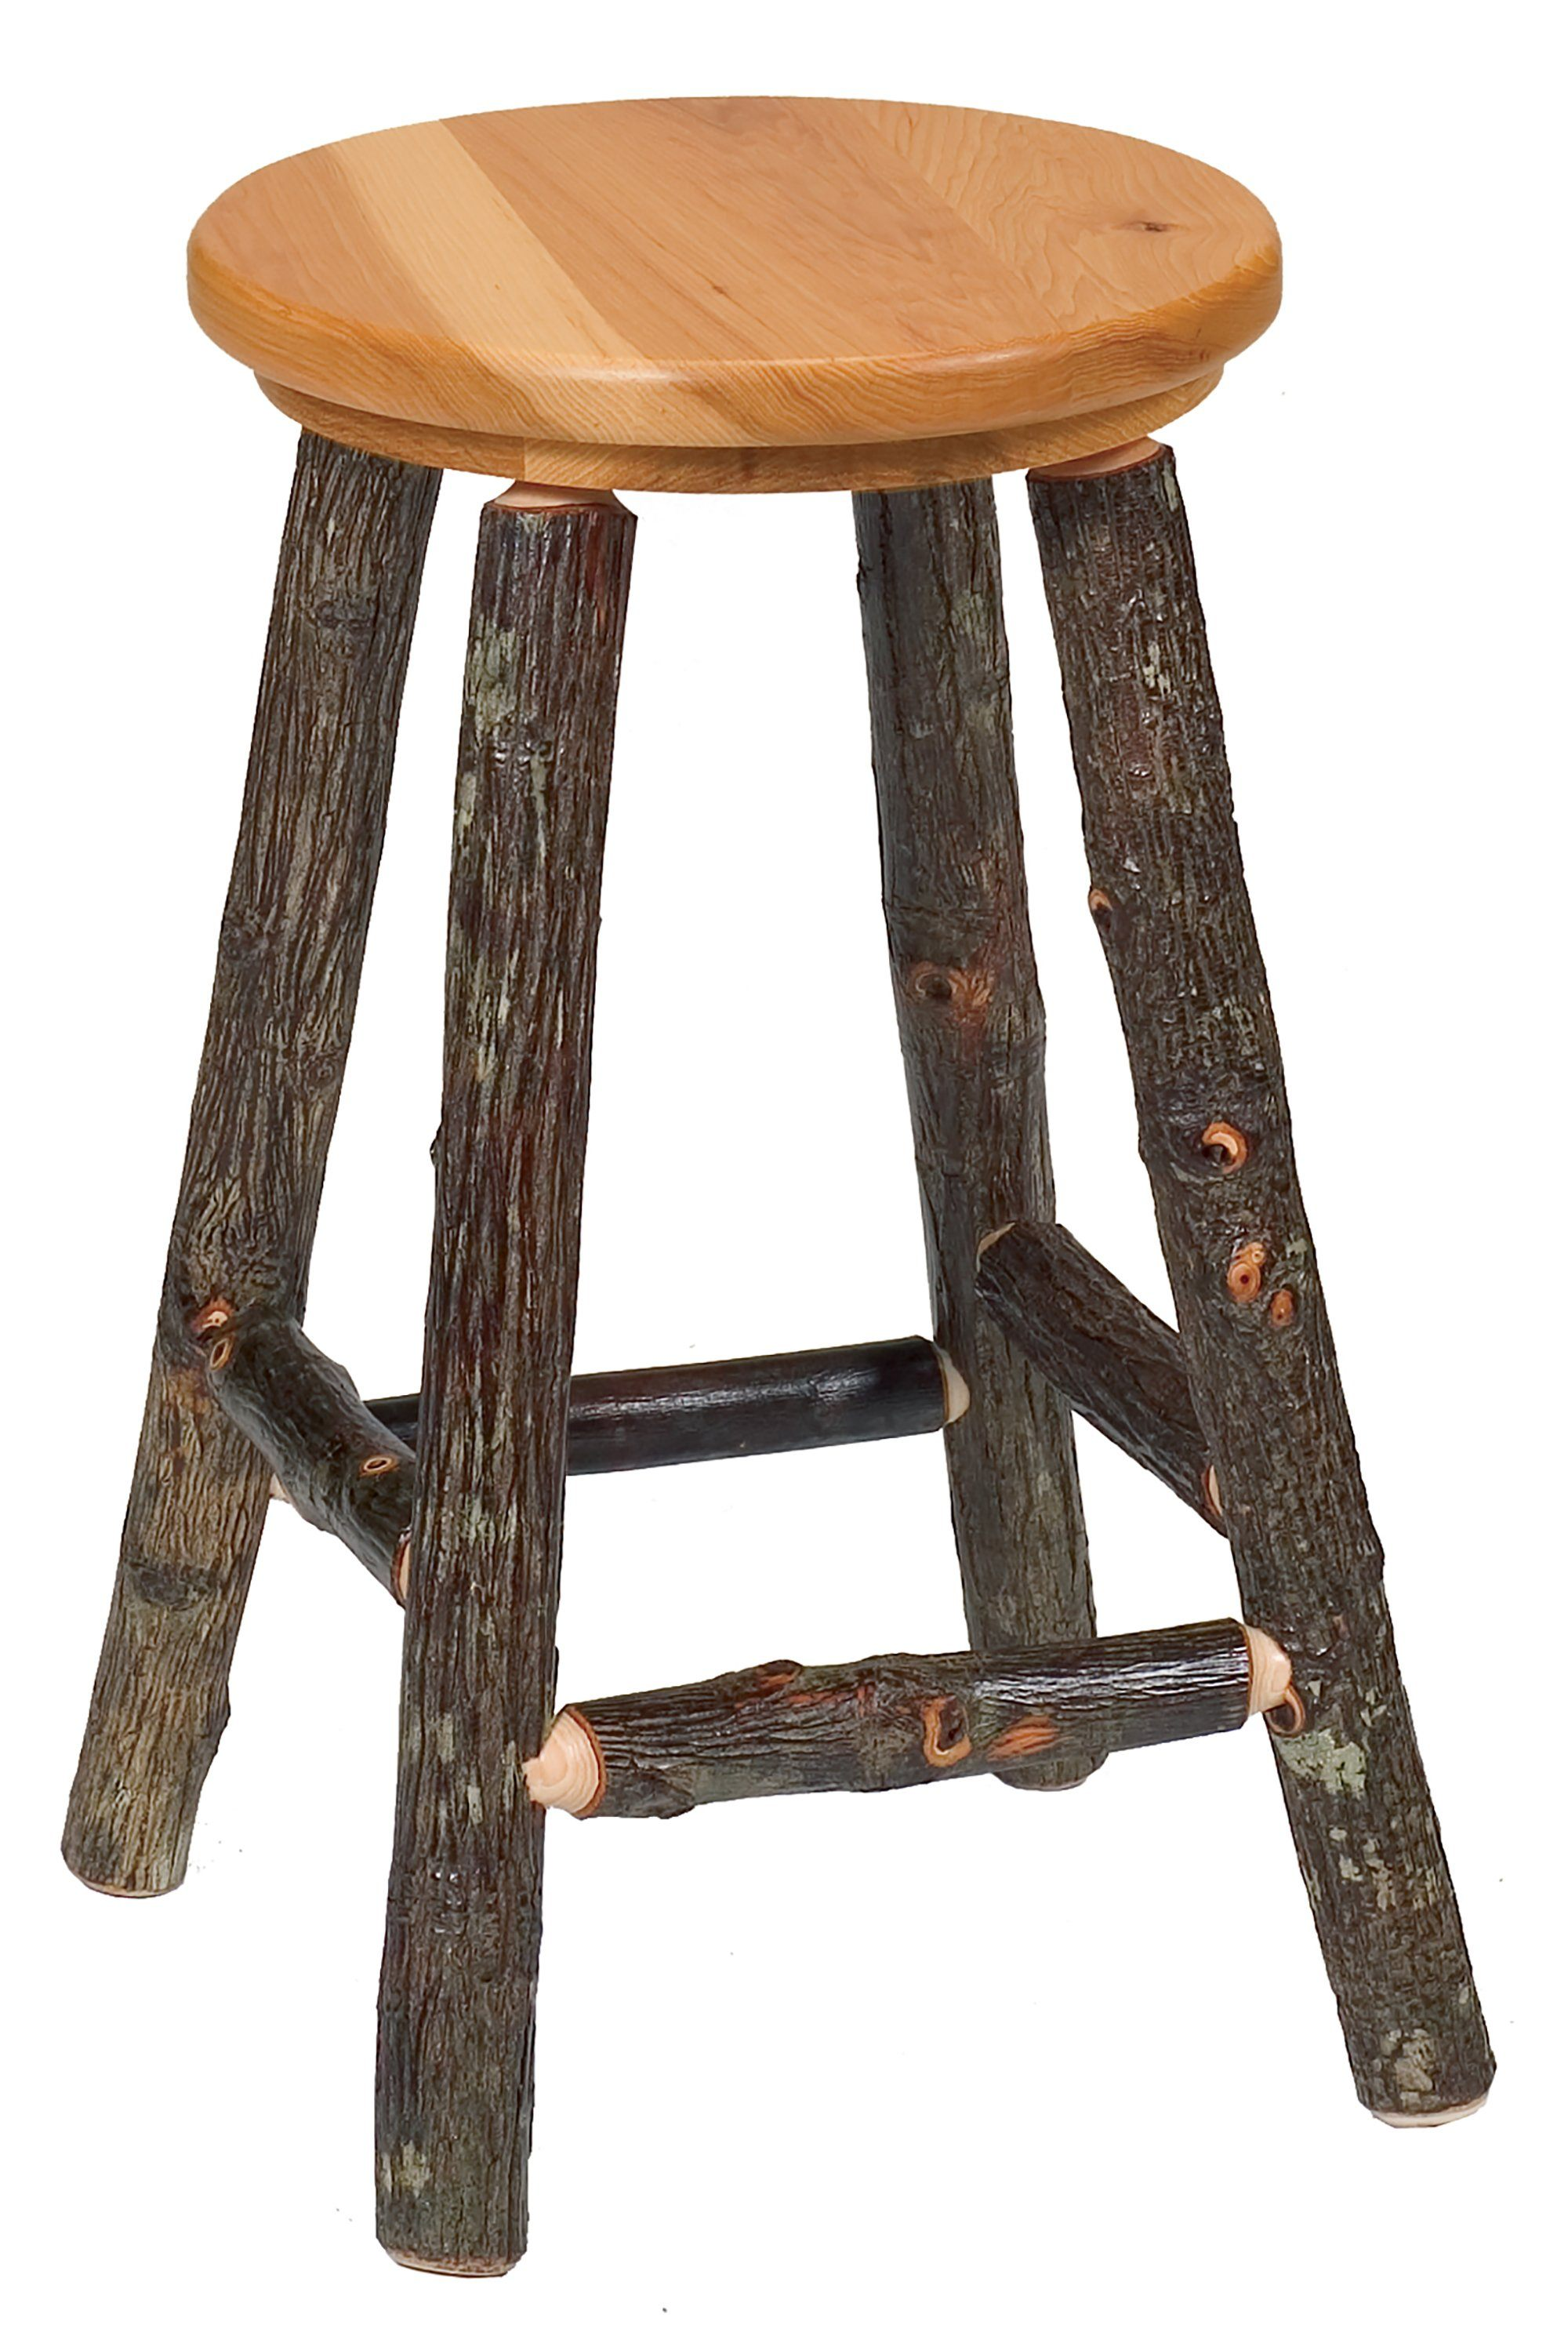 Awesome Natural Hickory Log Round Counter Stool 24 High Wood Seat Non Swivel Pdpeps Interior Chair Design Pdpepsorg